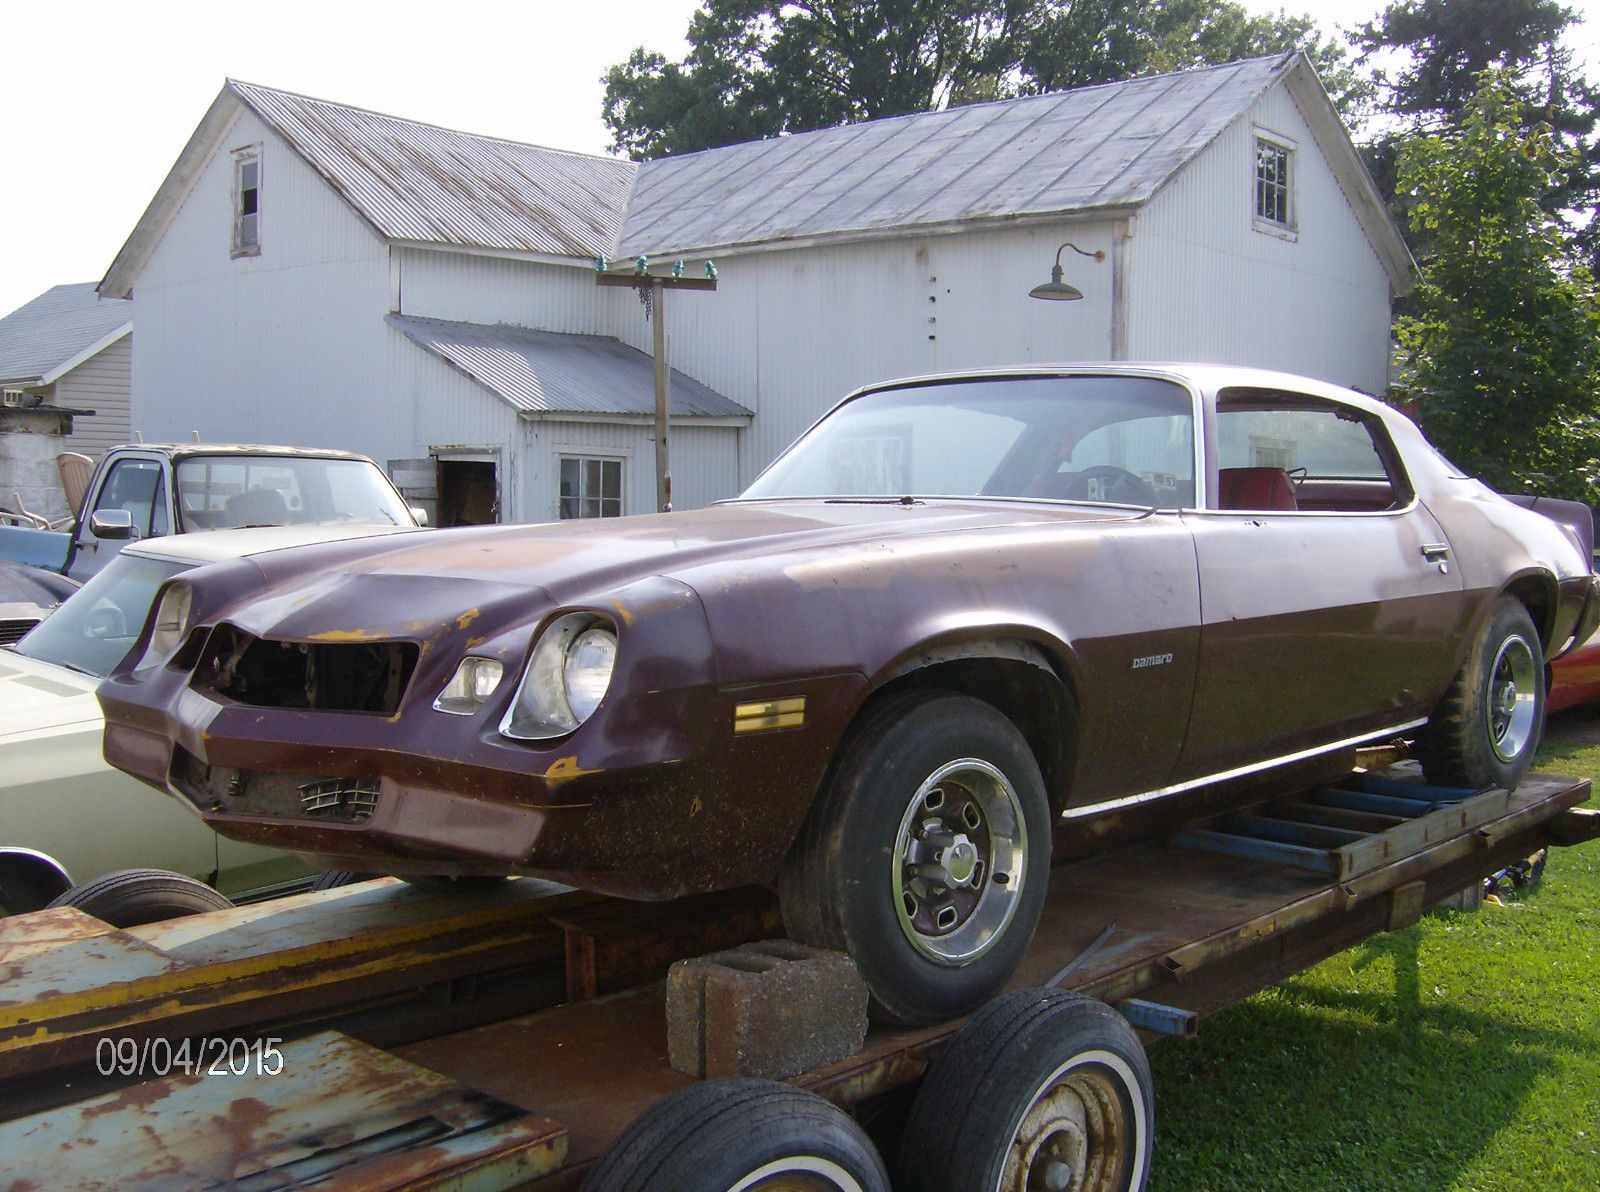 1981 Chevrolet Camaro Sport Coupe Rolling Project car | Project ...